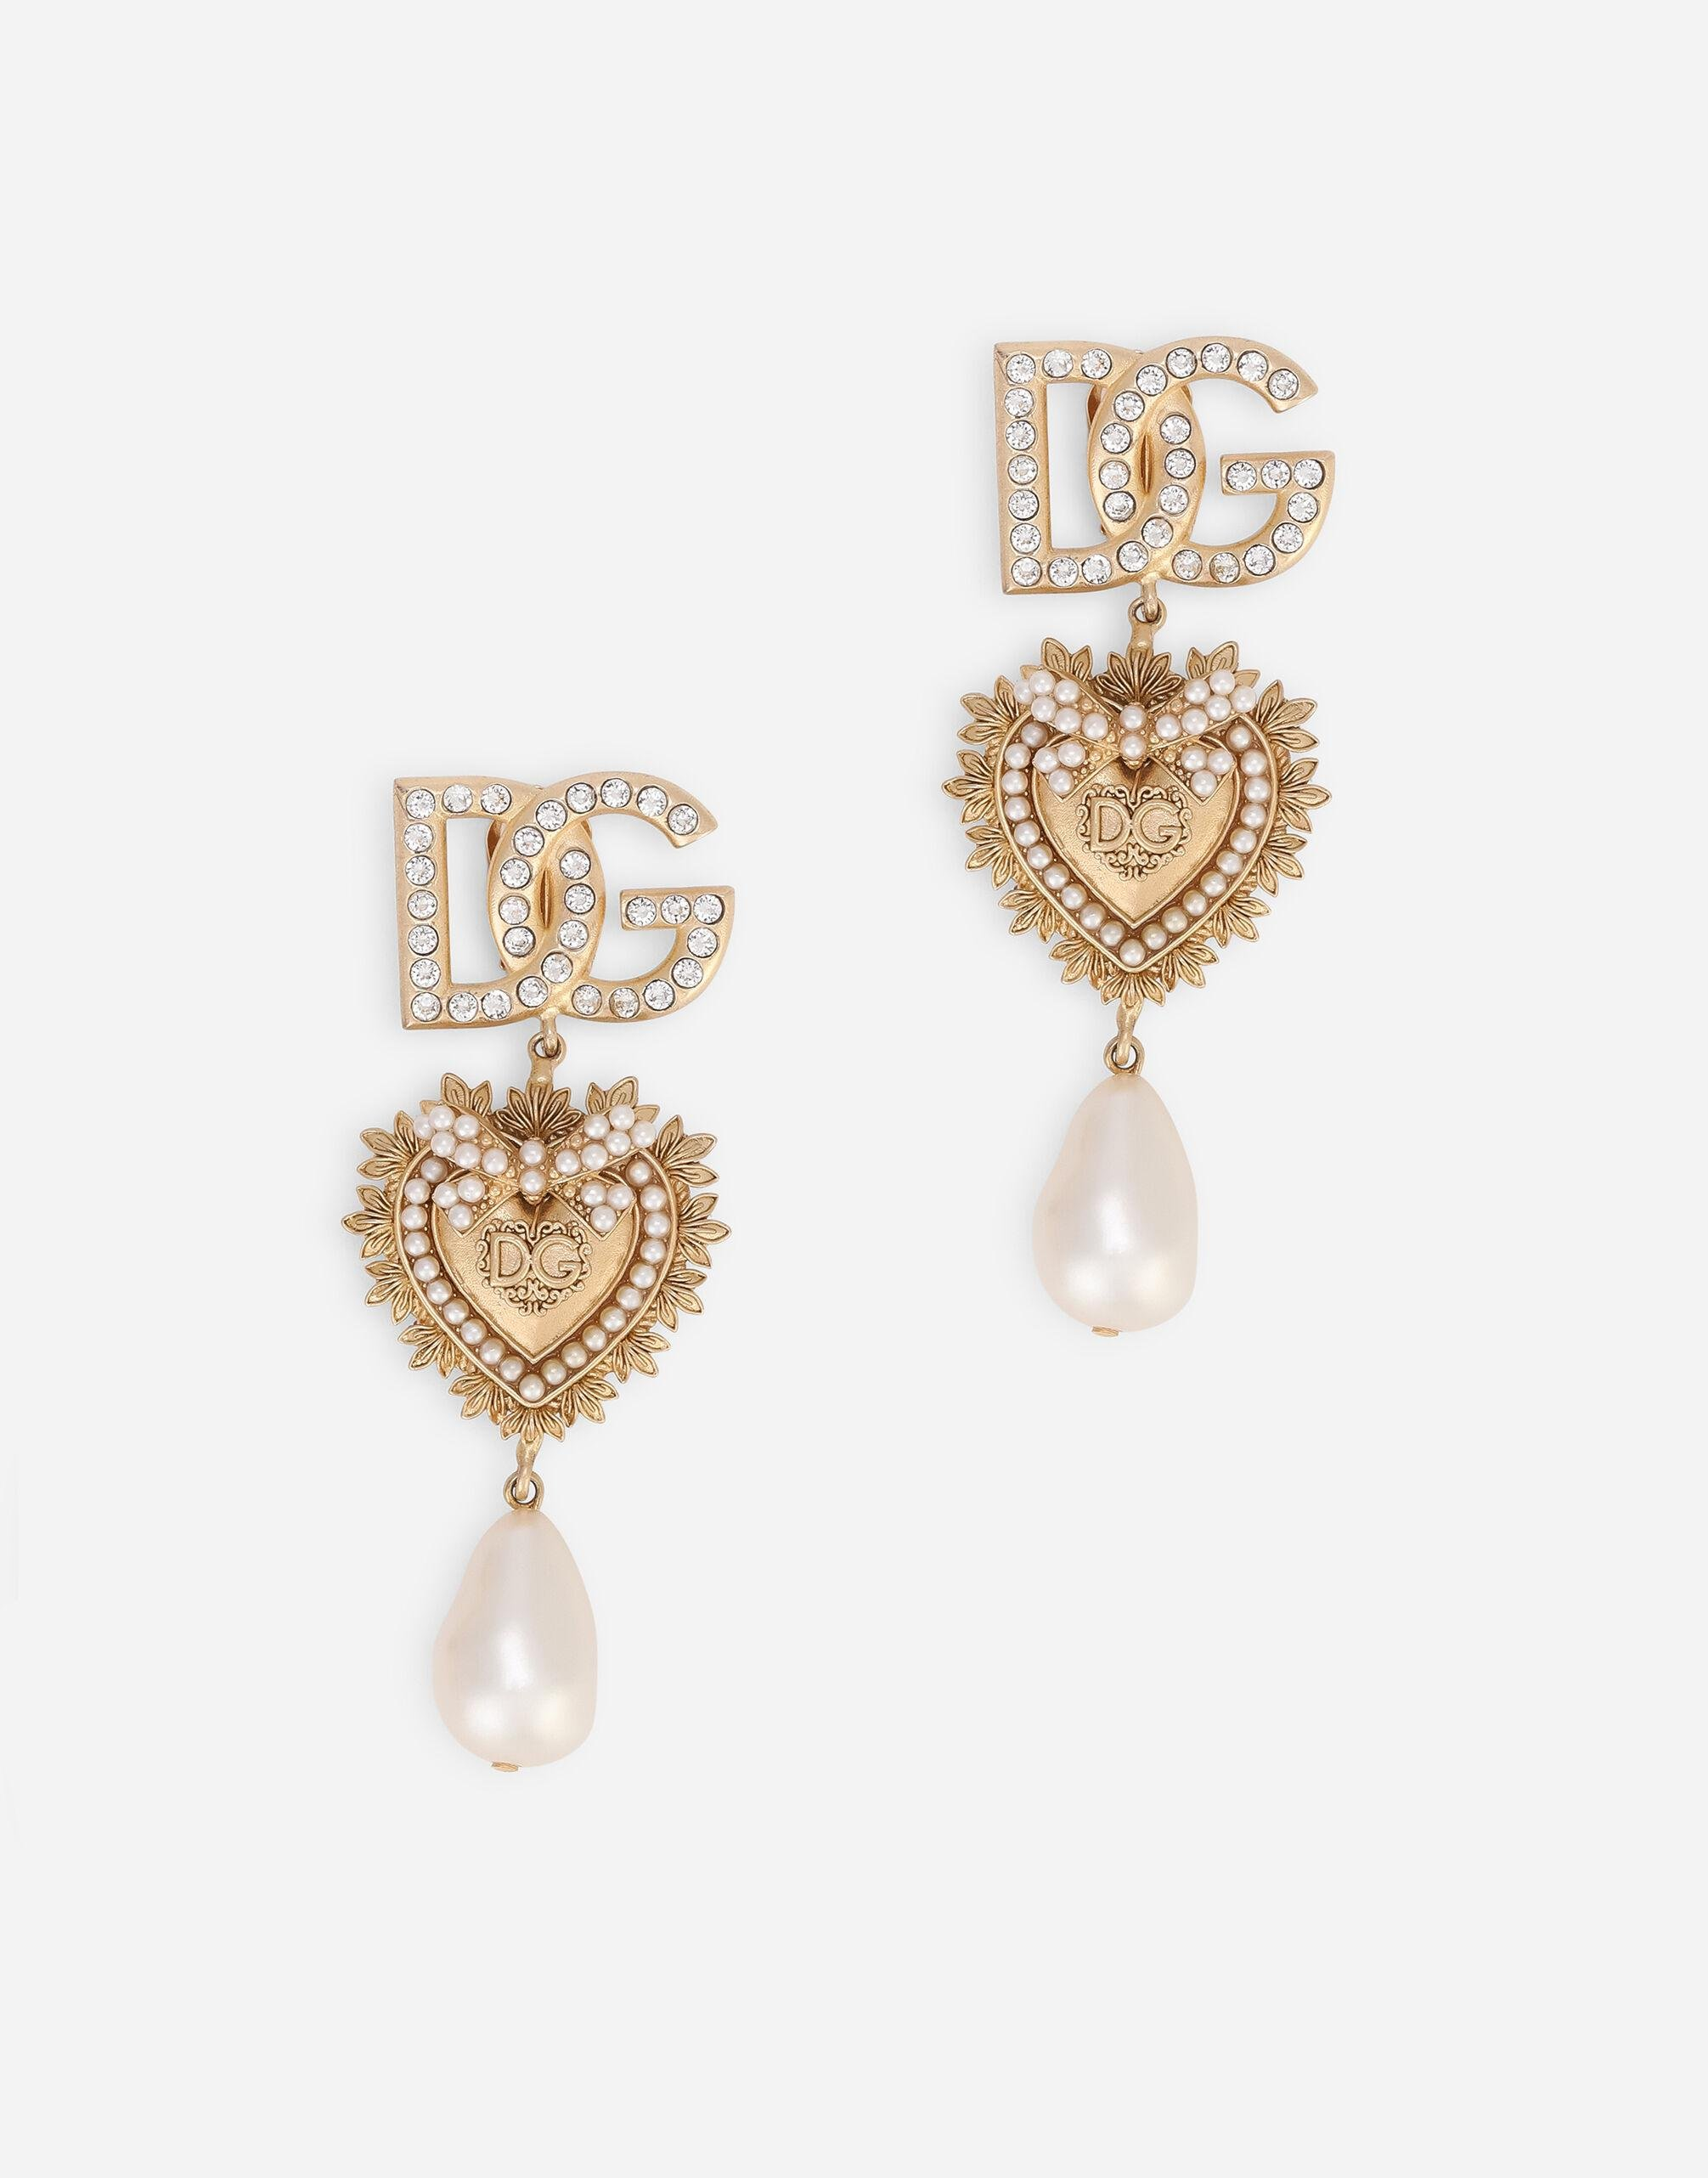 Clip-on drop earrings with decorative sacred heart, DG logo and pearl details